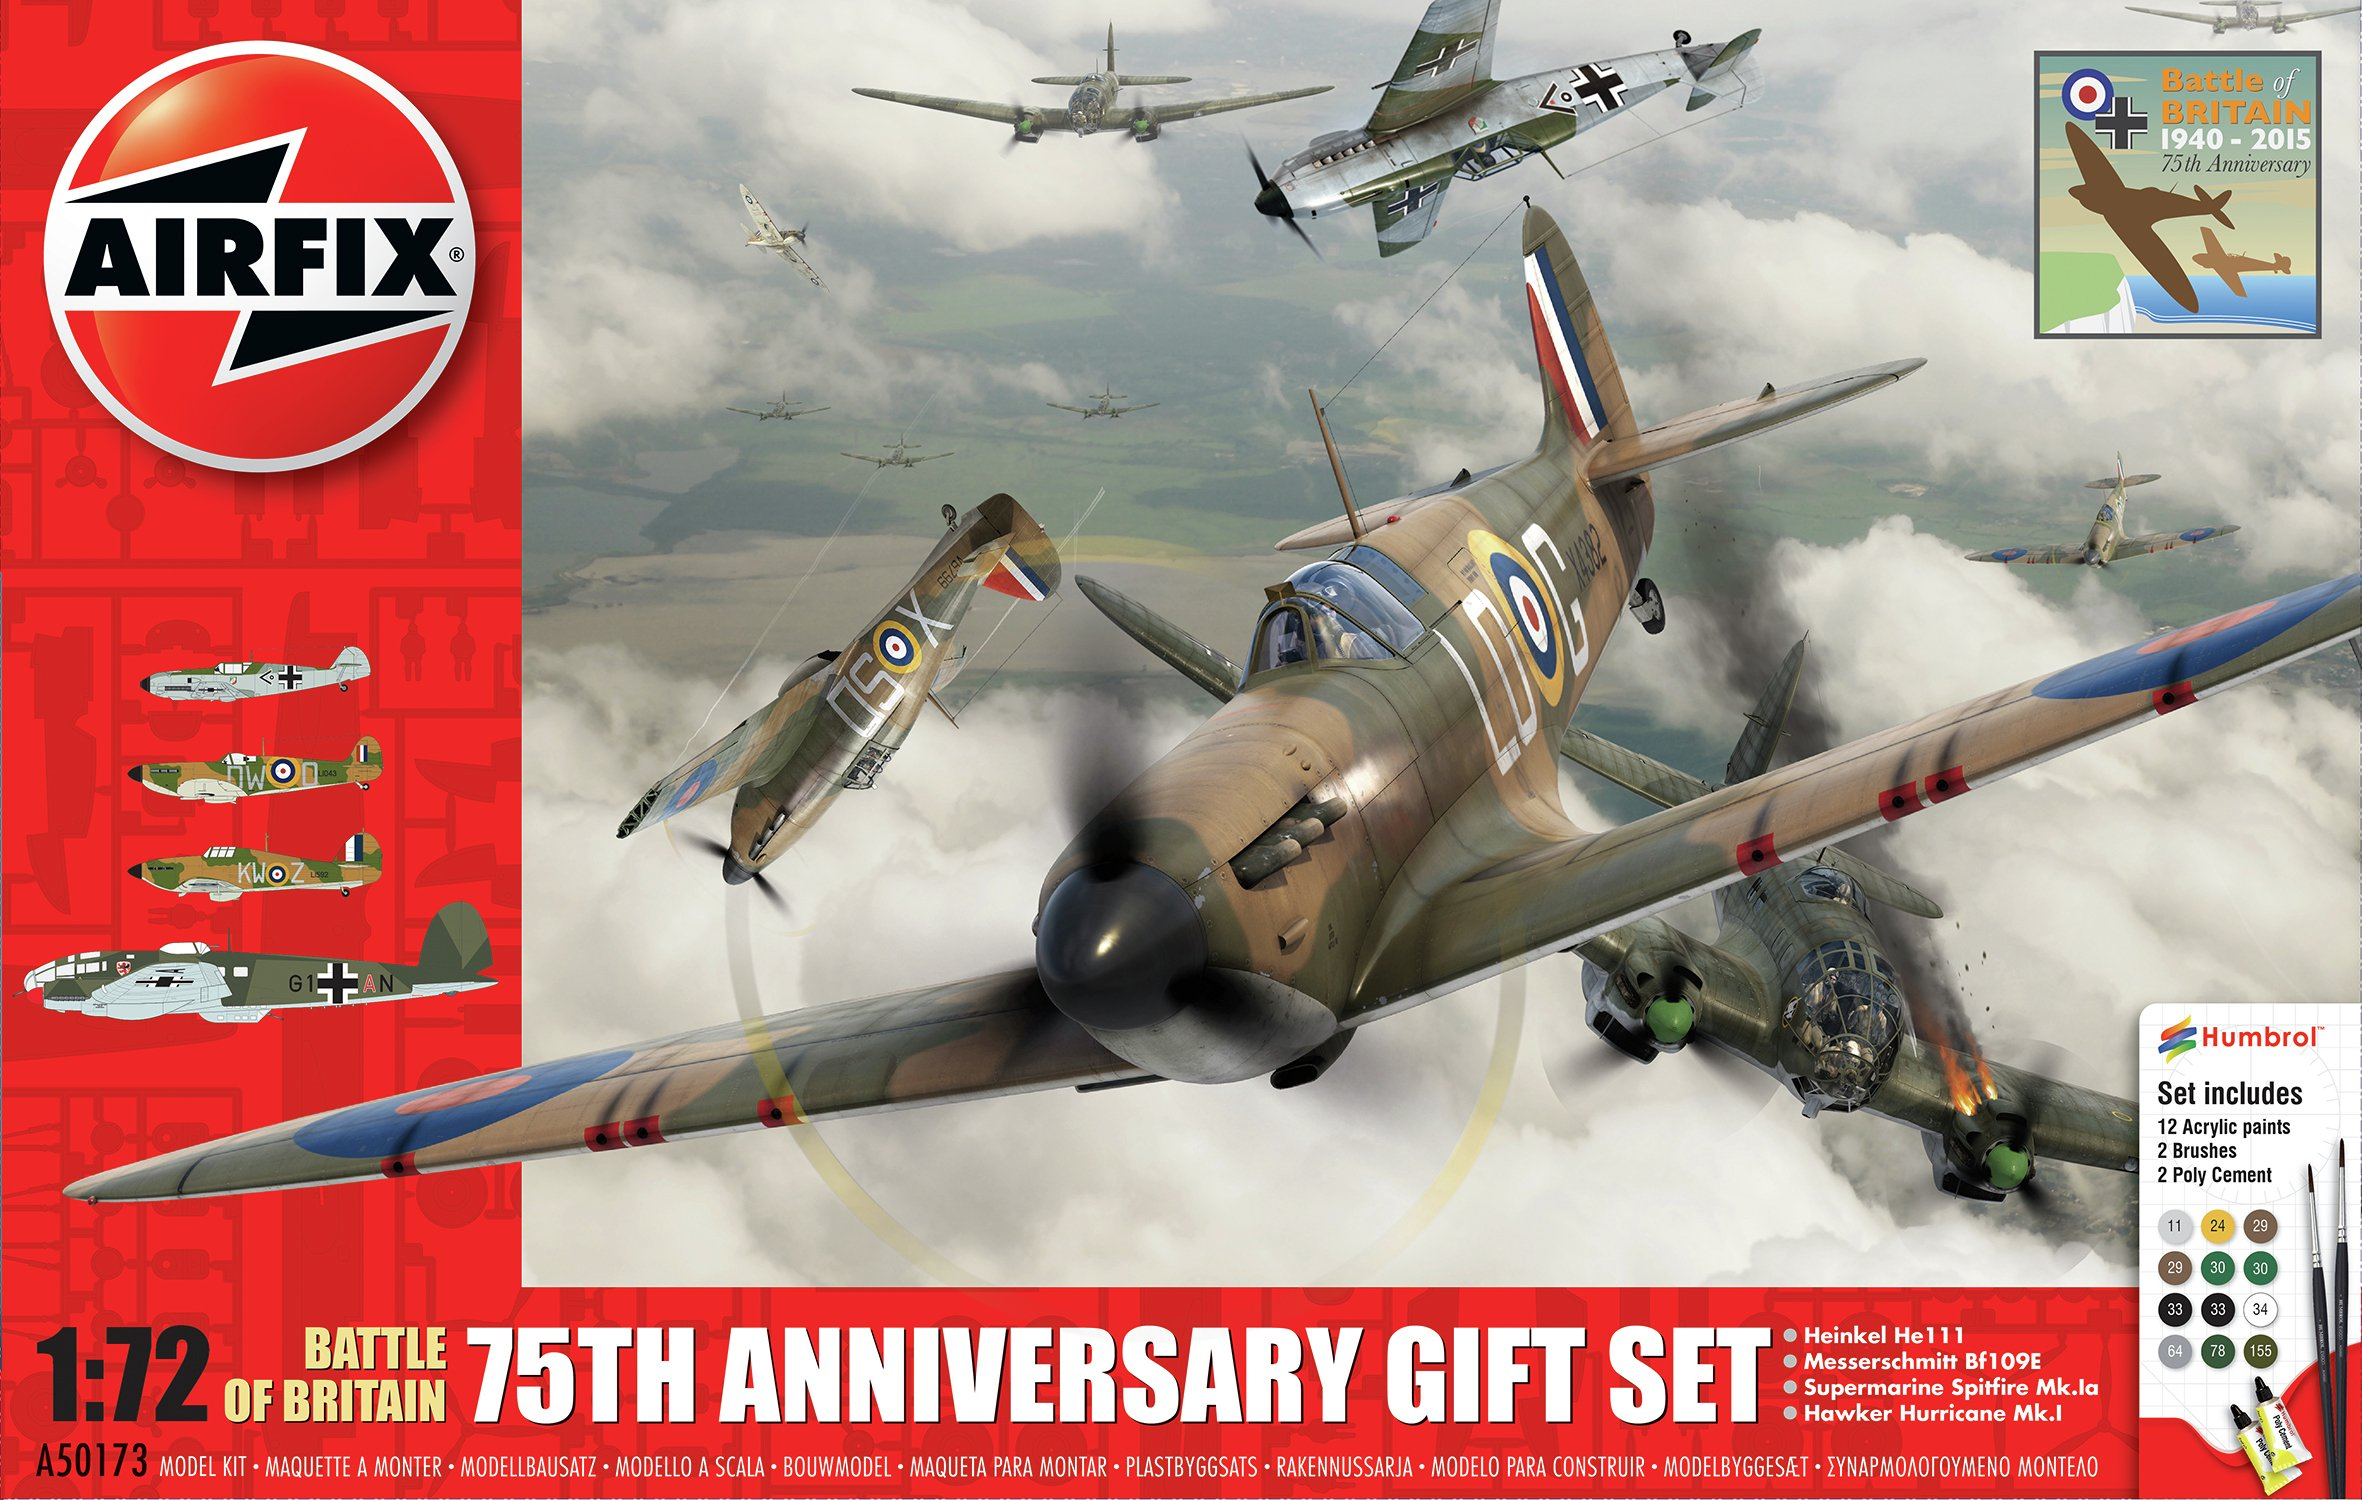 Image of Airfix Battle of Britain Gift Set.